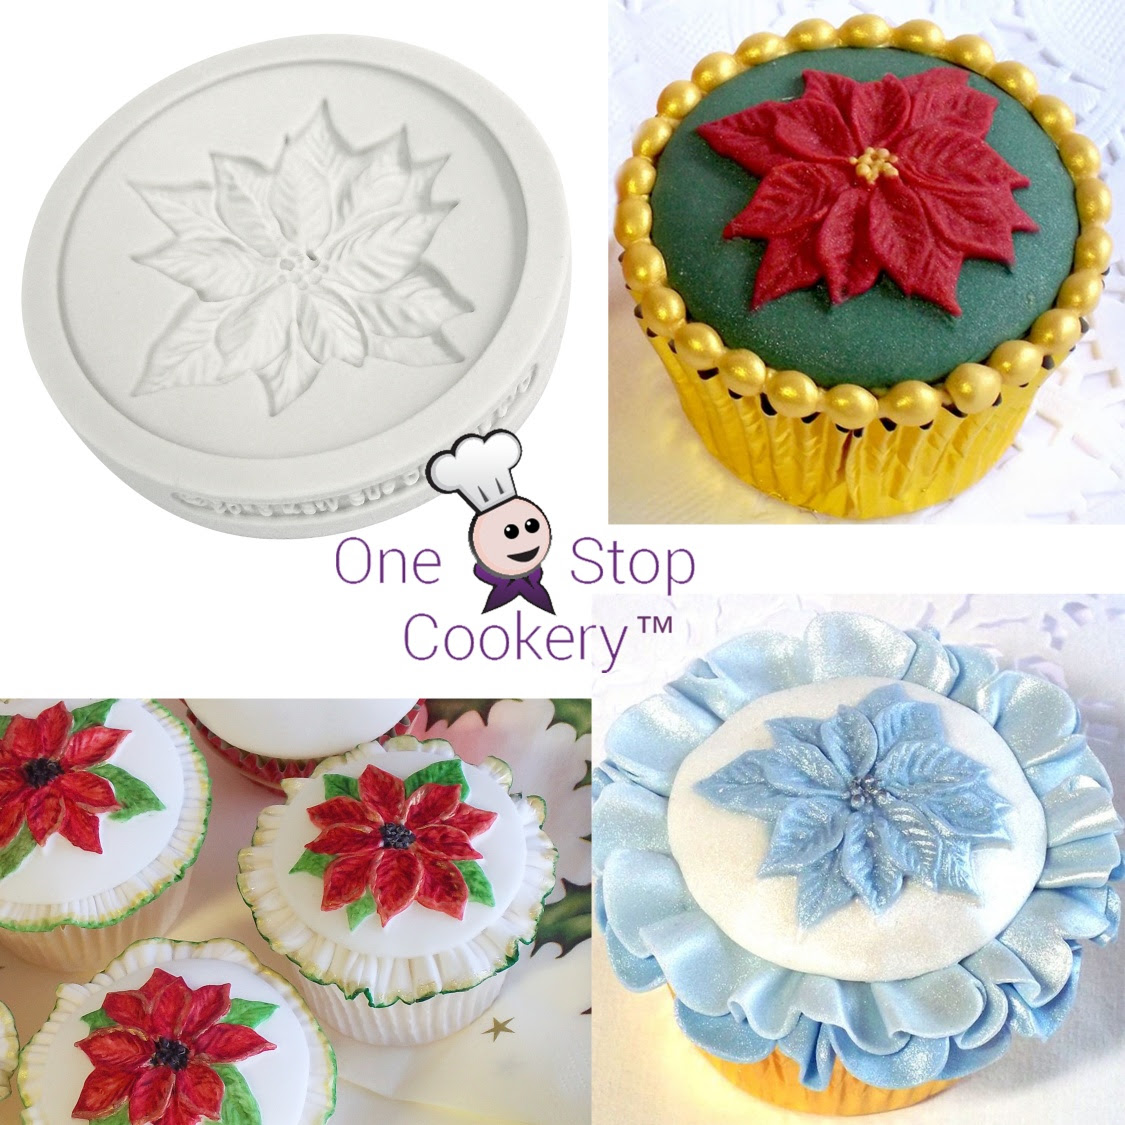 Katy Sue Designs Christmas Poinsettia Silicone Mould Baking And Cooking Equipment